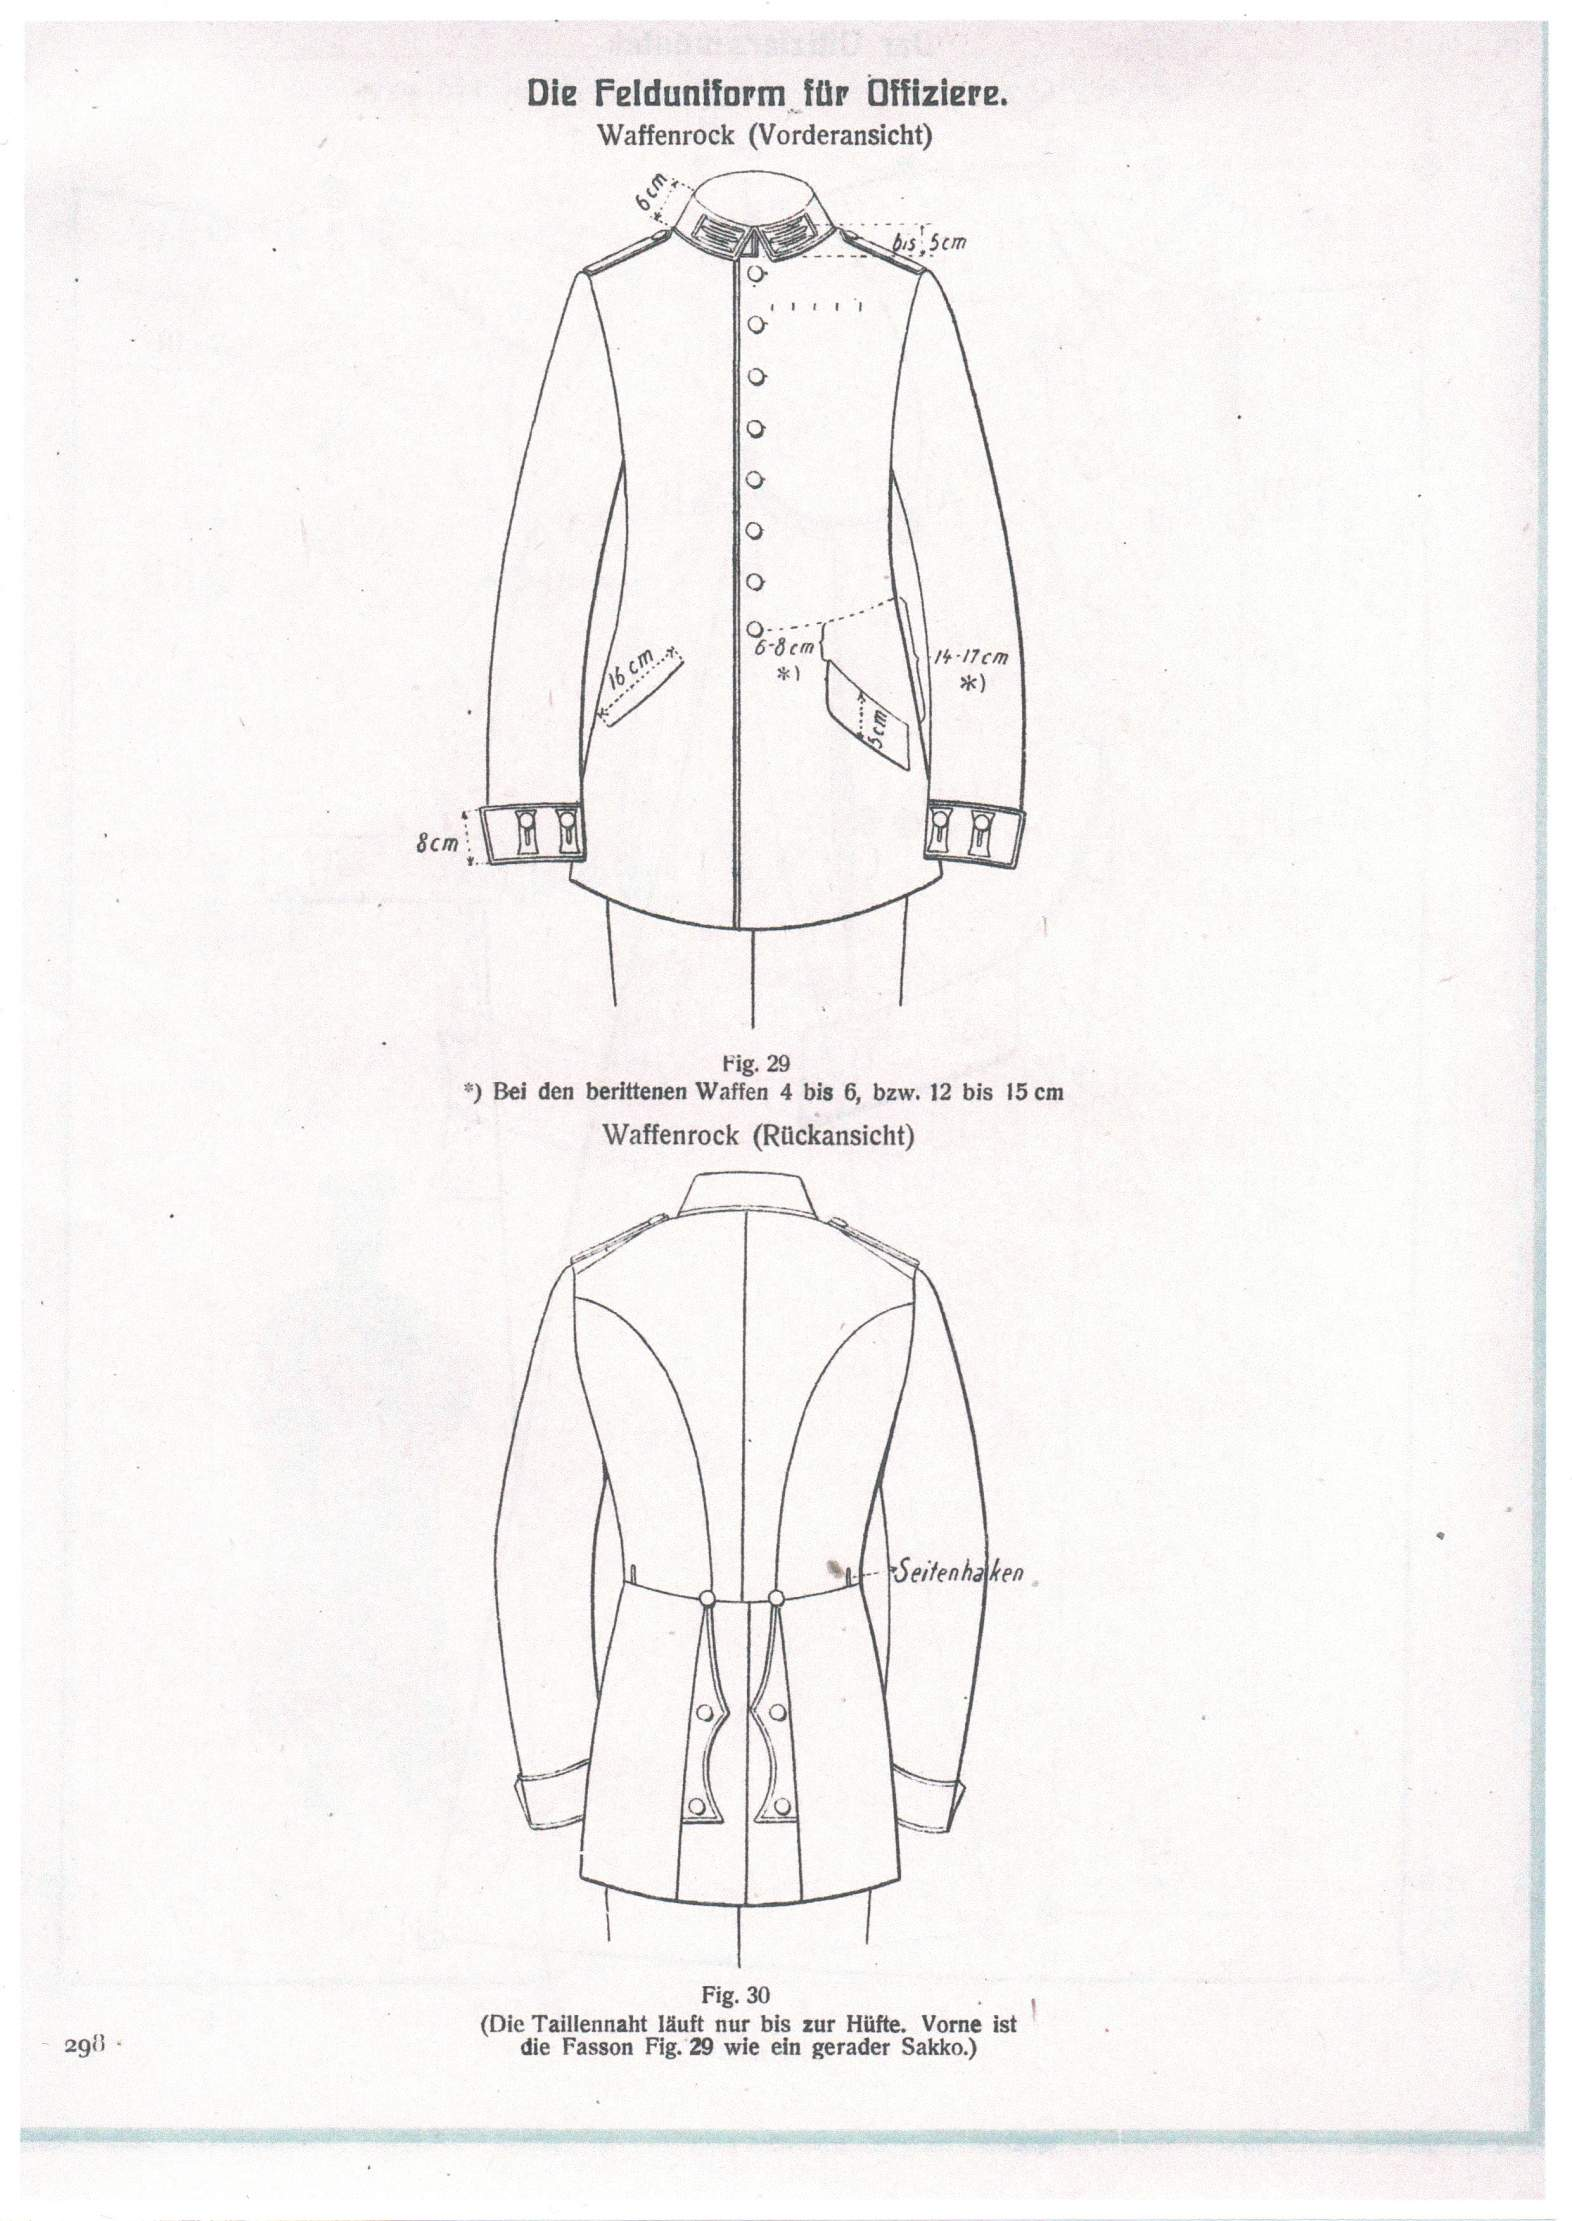 German uniforms patterns from a tailoring book